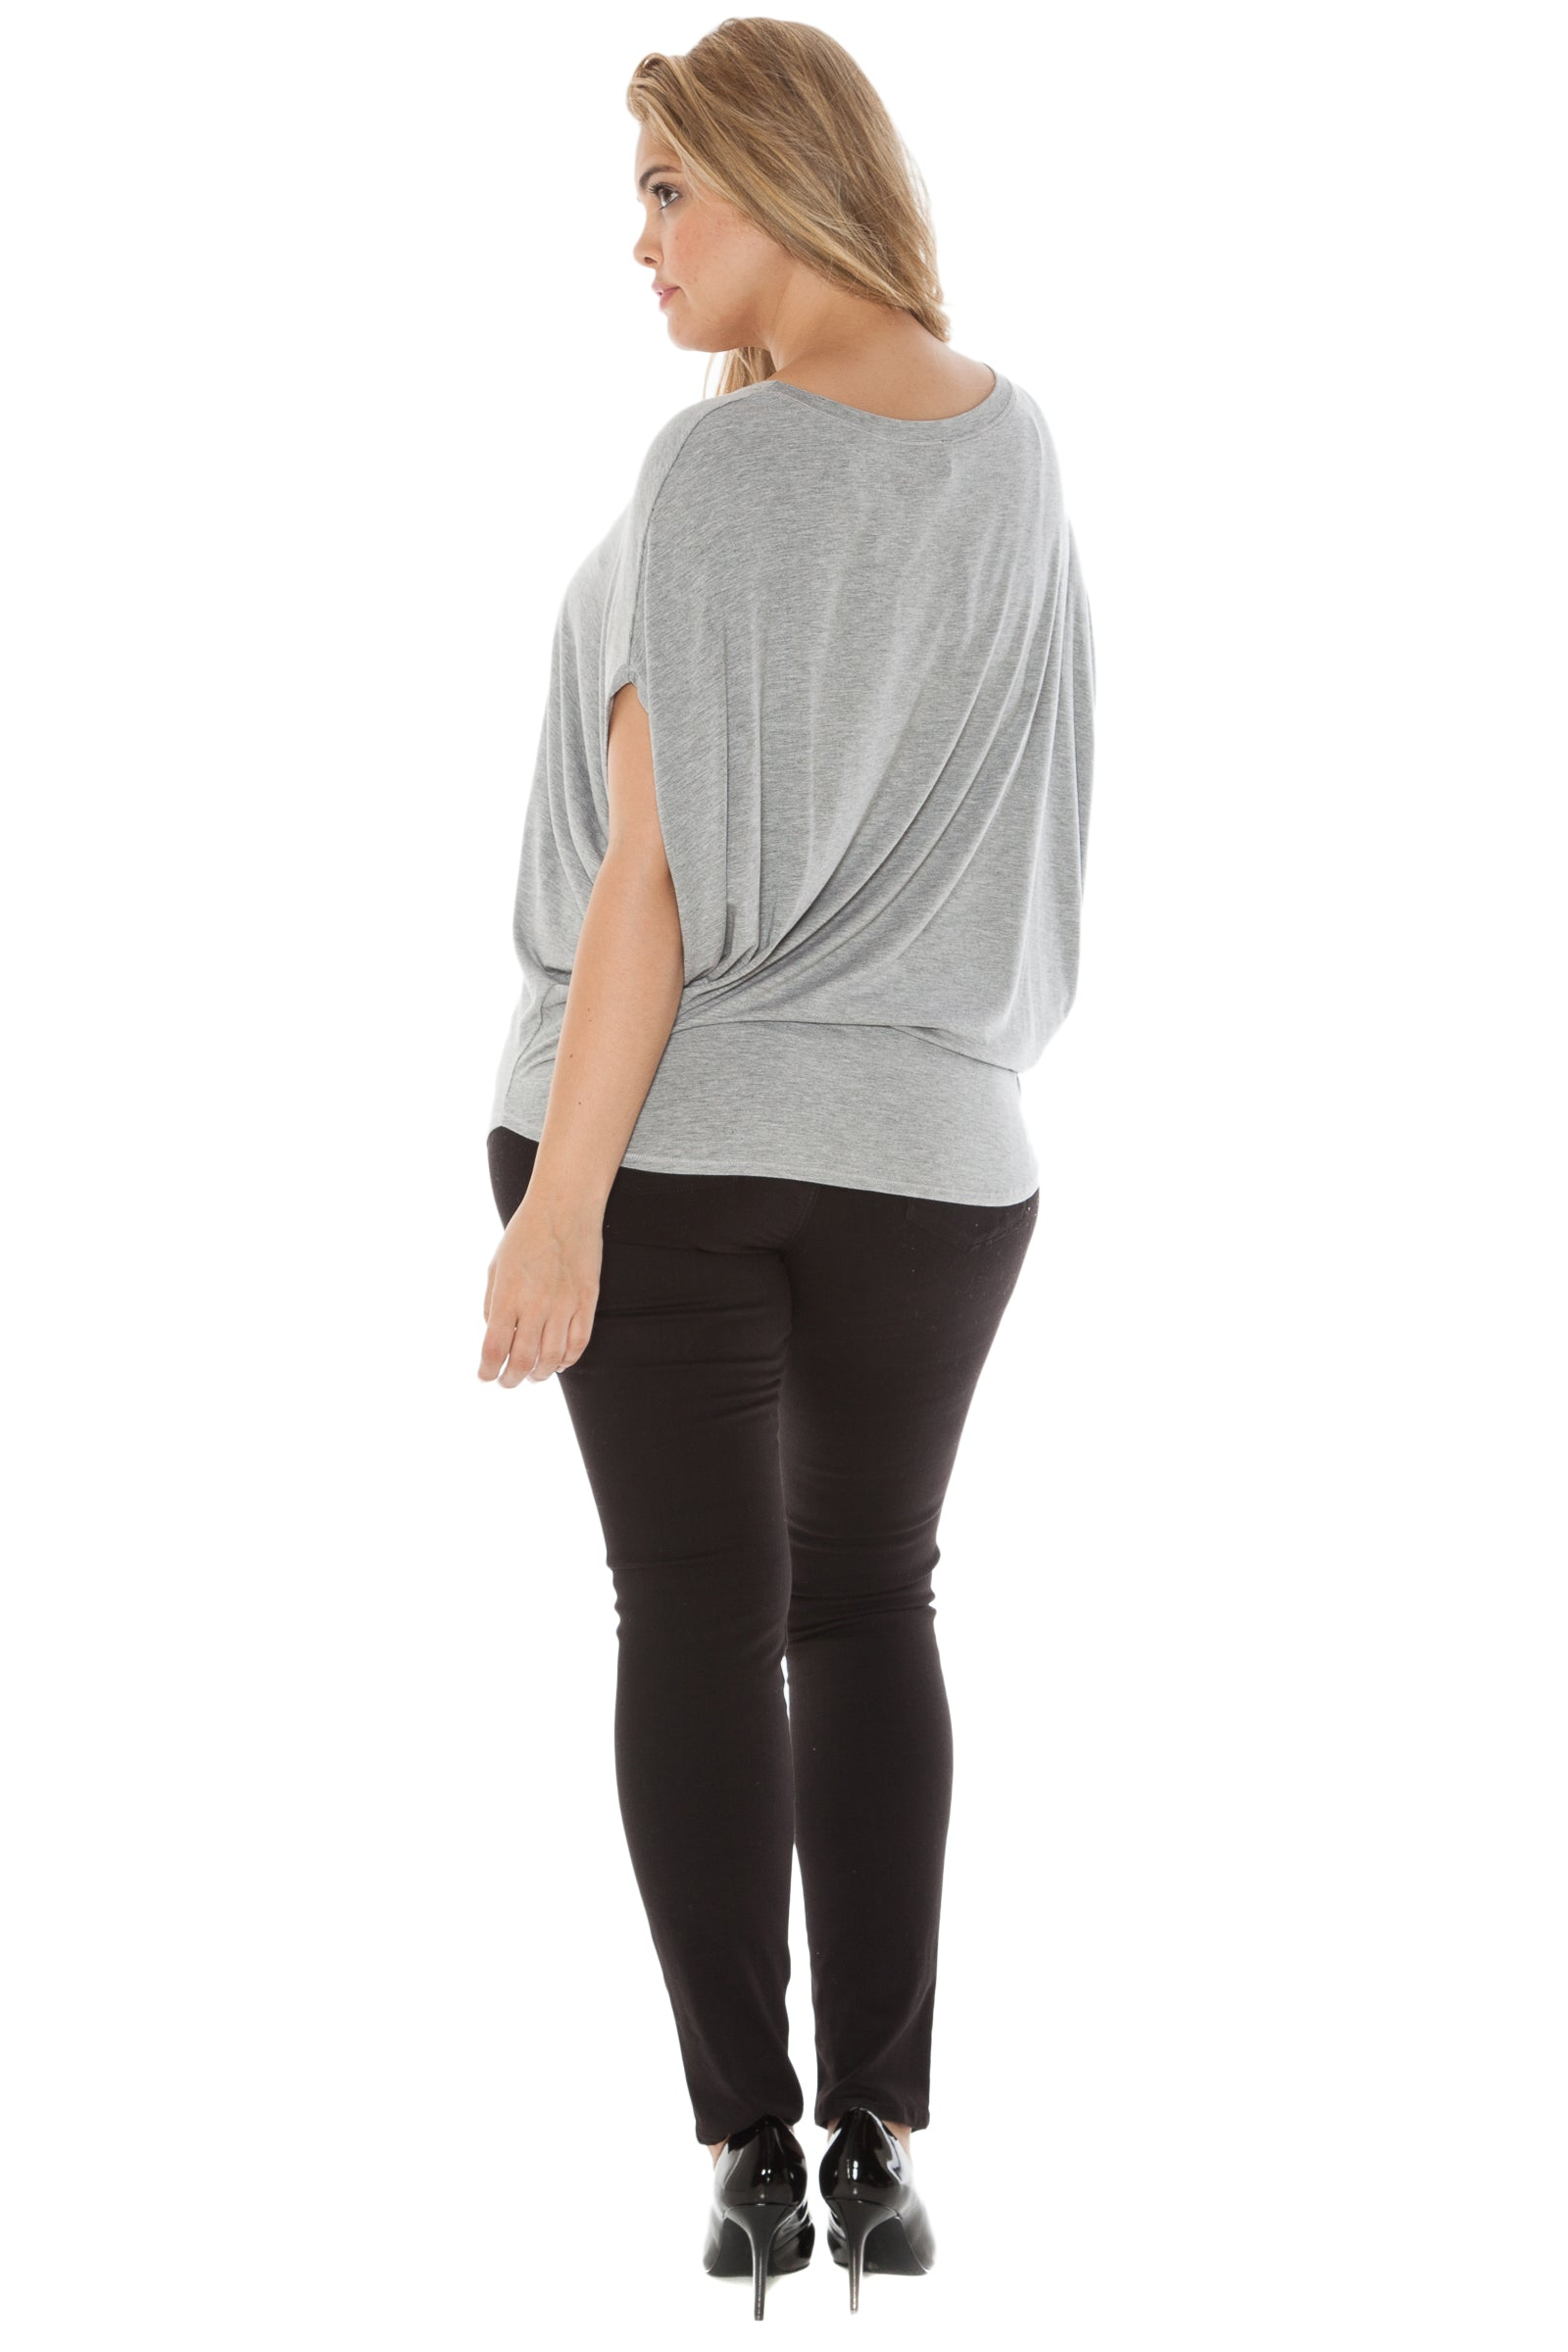 The Short Sleeve Scoop Neck Dolman Tee